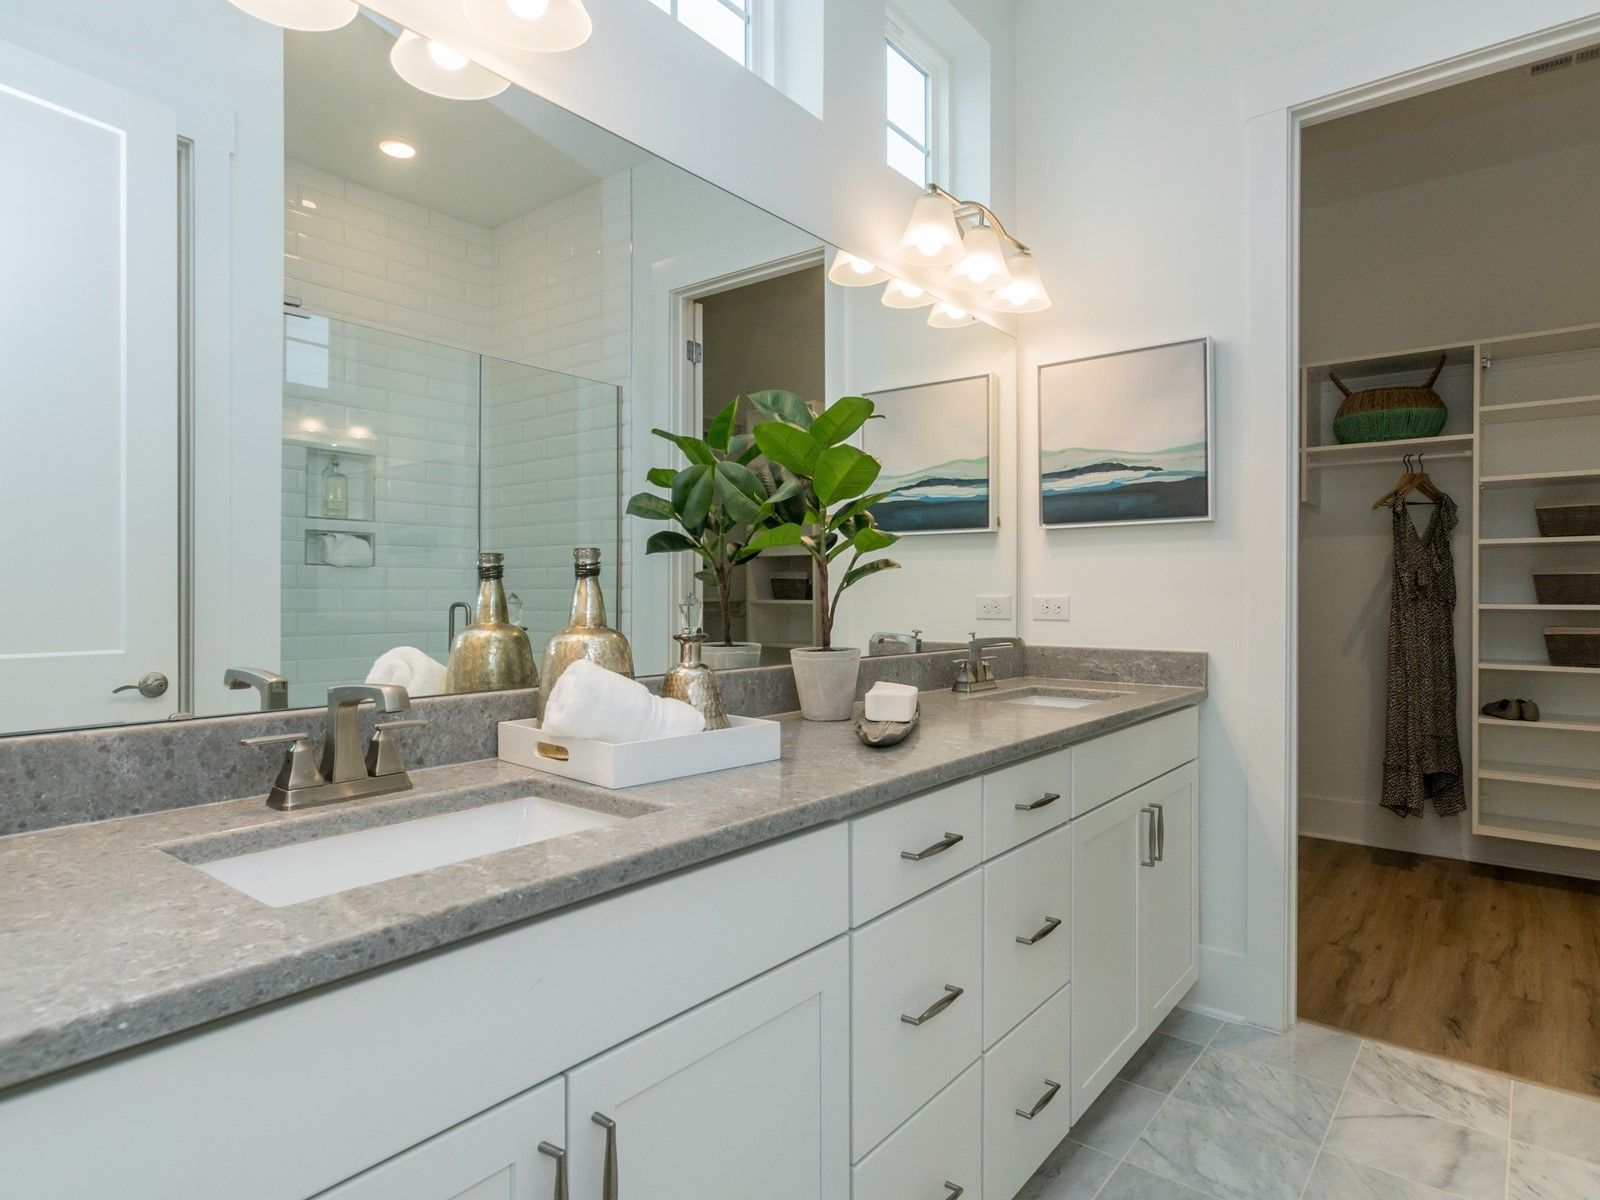 Bathroom featured in The Curator By Elevate Homes in York, PA